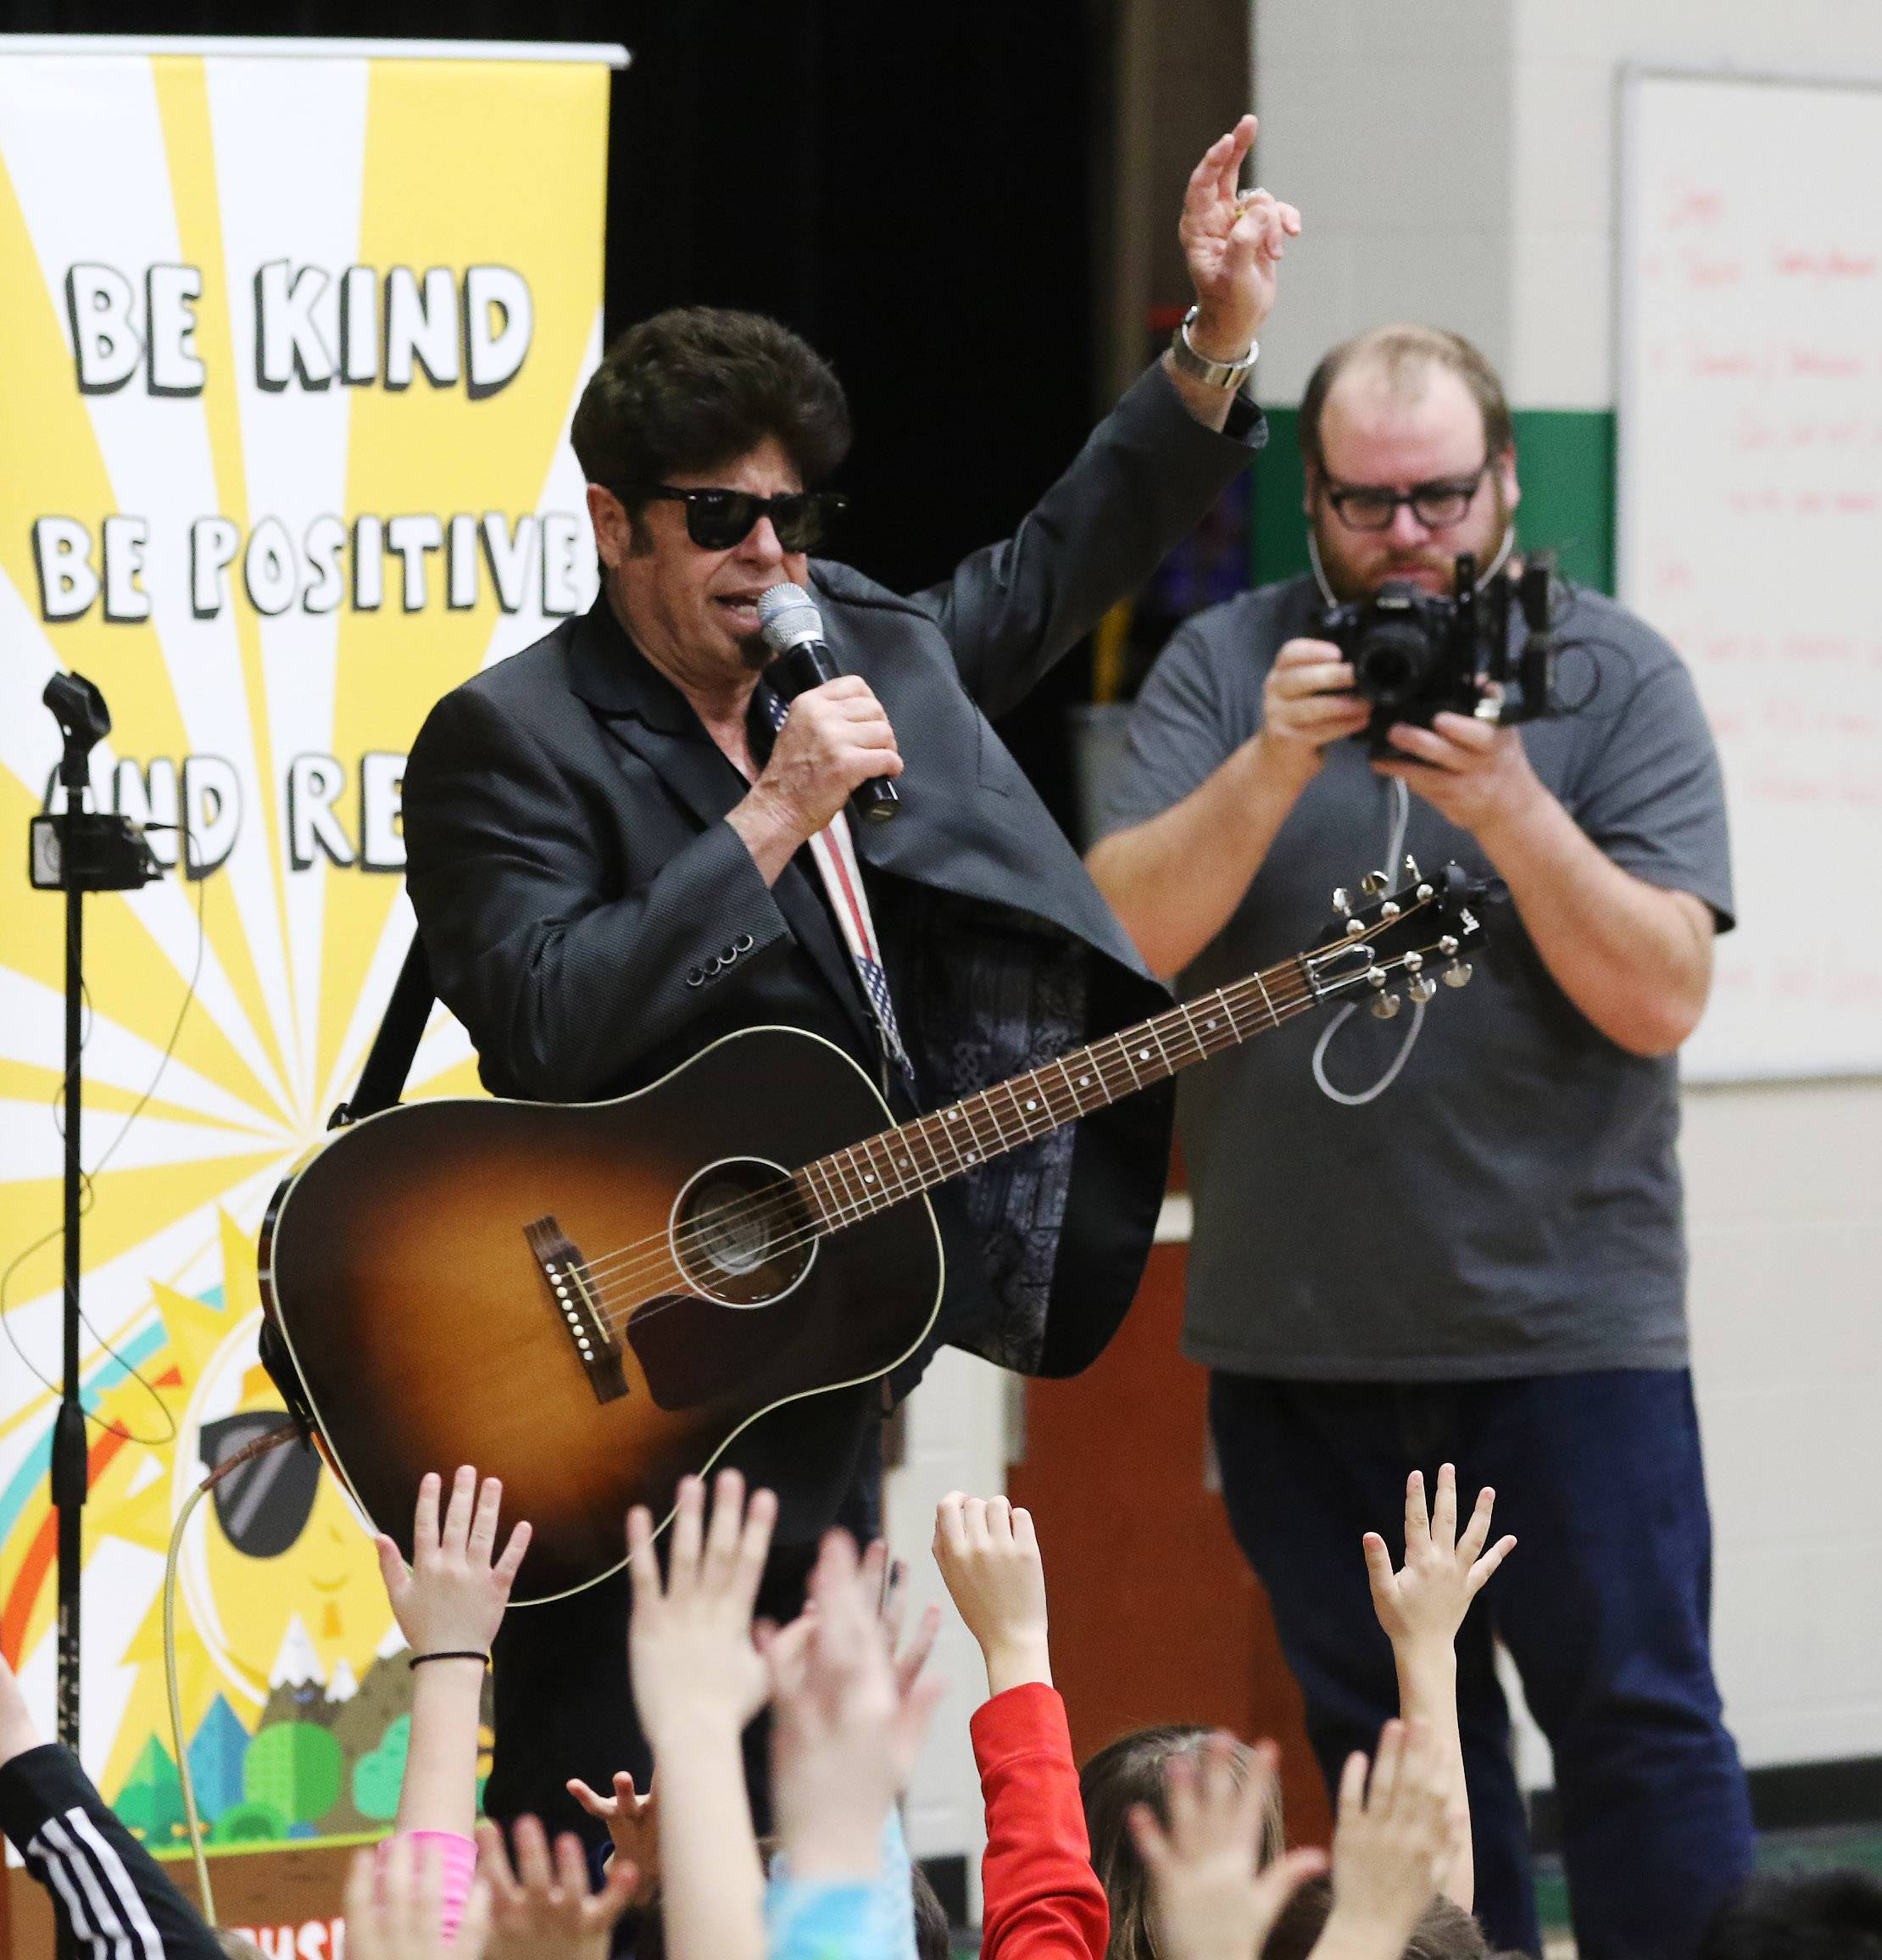 "Entertainer Stu Jacobson is filmed by videographer Brian Rich as he presents his program, ""Be Kind, Be Positive, and Read!"" for students at Fremont Intermediate School near Mundelein on Tuesday. The daytime talk show ""Windy City LIVE"" recorded him for an upcoming episode."